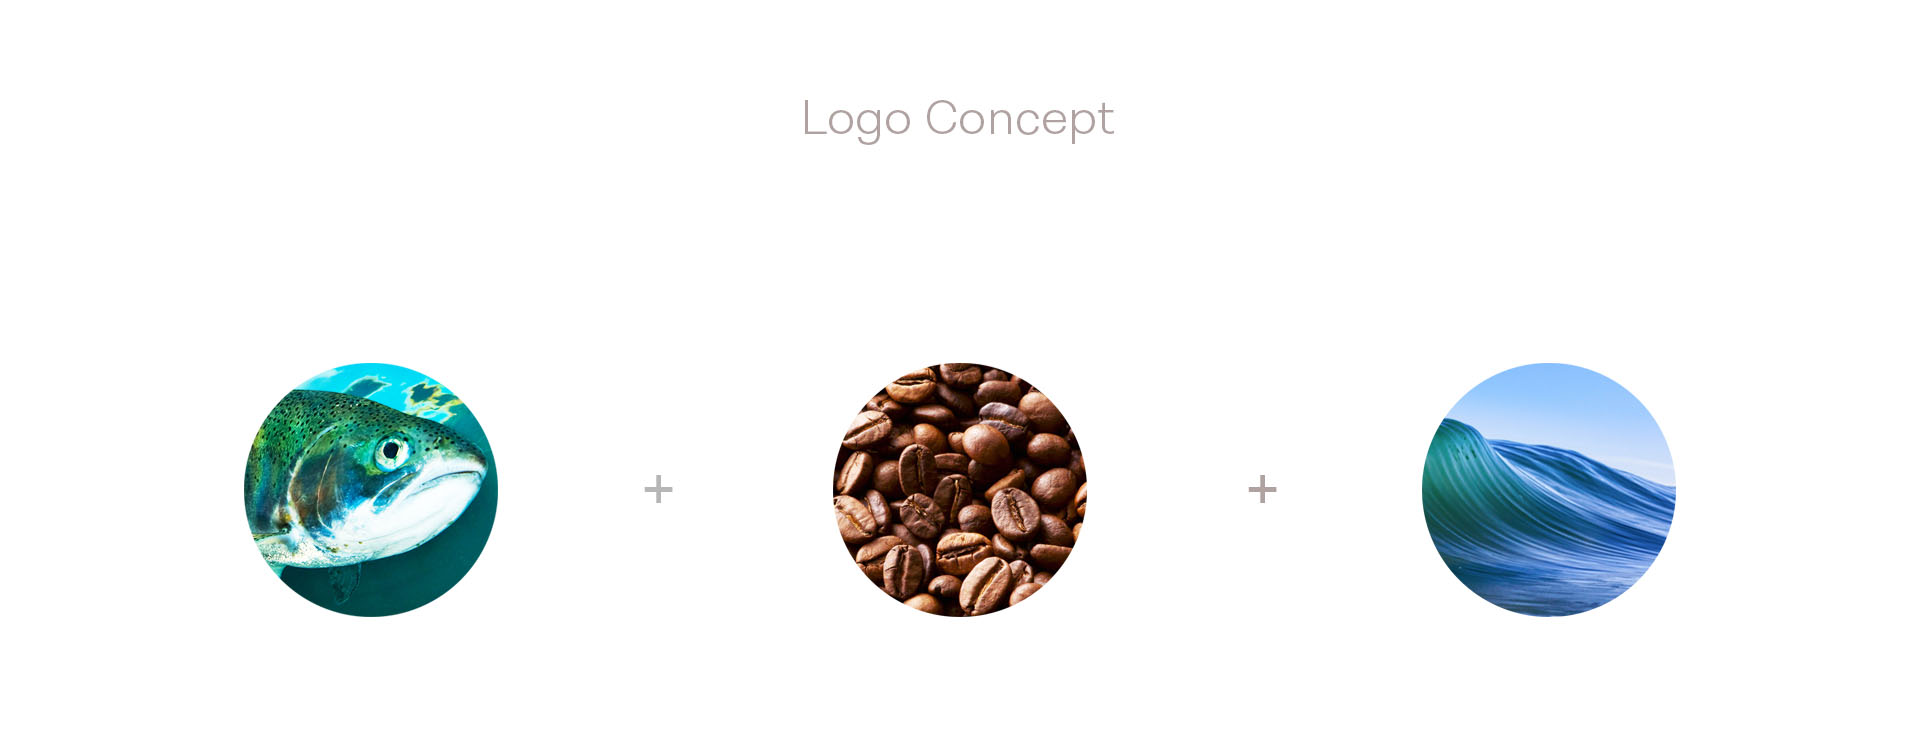 Logo Design Concept and Idea